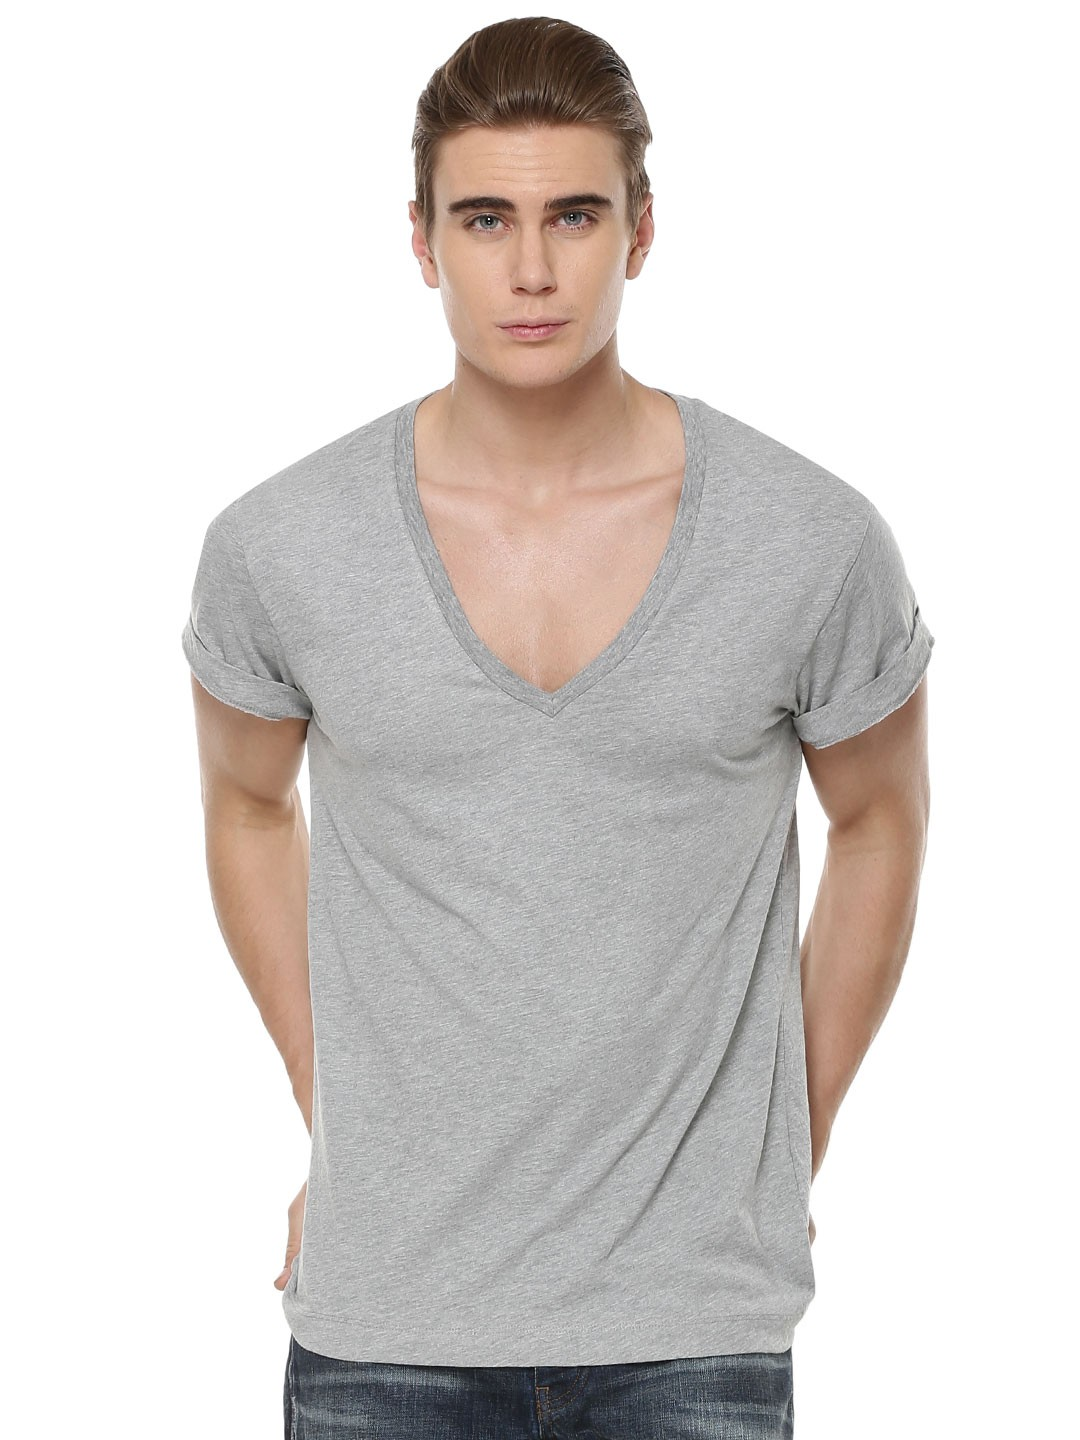 Find great deals on eBay for deep neck mens t shirt. Shop with confidence.